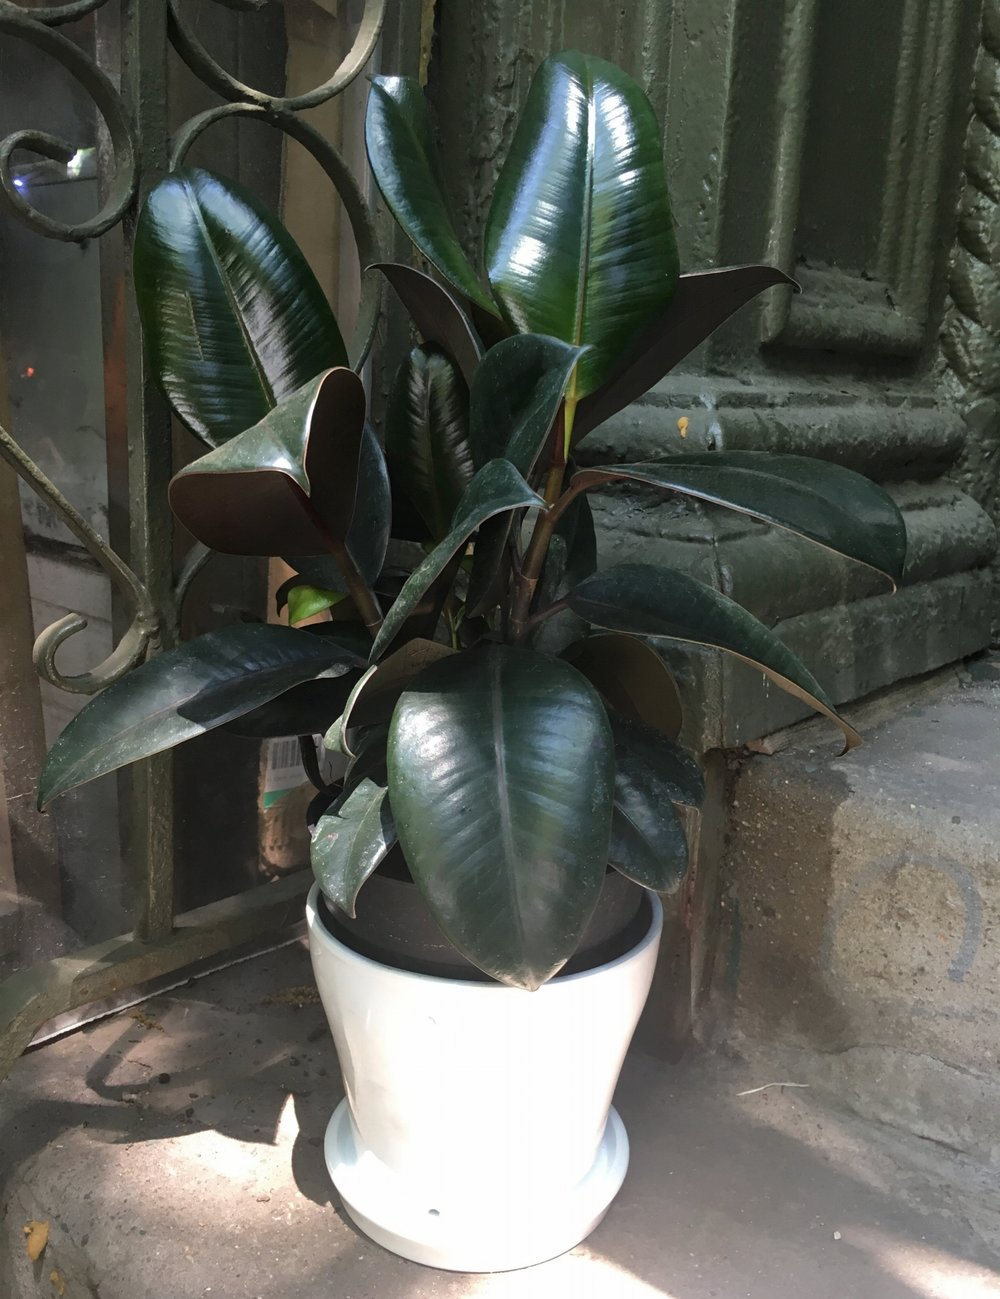 8. Rubber plant - Prefers indirect, bright light but low light okayWater about once a week, when top of soil feels dry, soak until water drains from bottom Wipe off leaves when dusty for shine and better respiration / filteringProduces latex when cut - not the same kind use to for natural rubber but it can burn the skin so be cautious when pruningCan become very tall, easily growing to the ceiling - pruning keeps them fuller and shorter(toxic to dogs & cats)